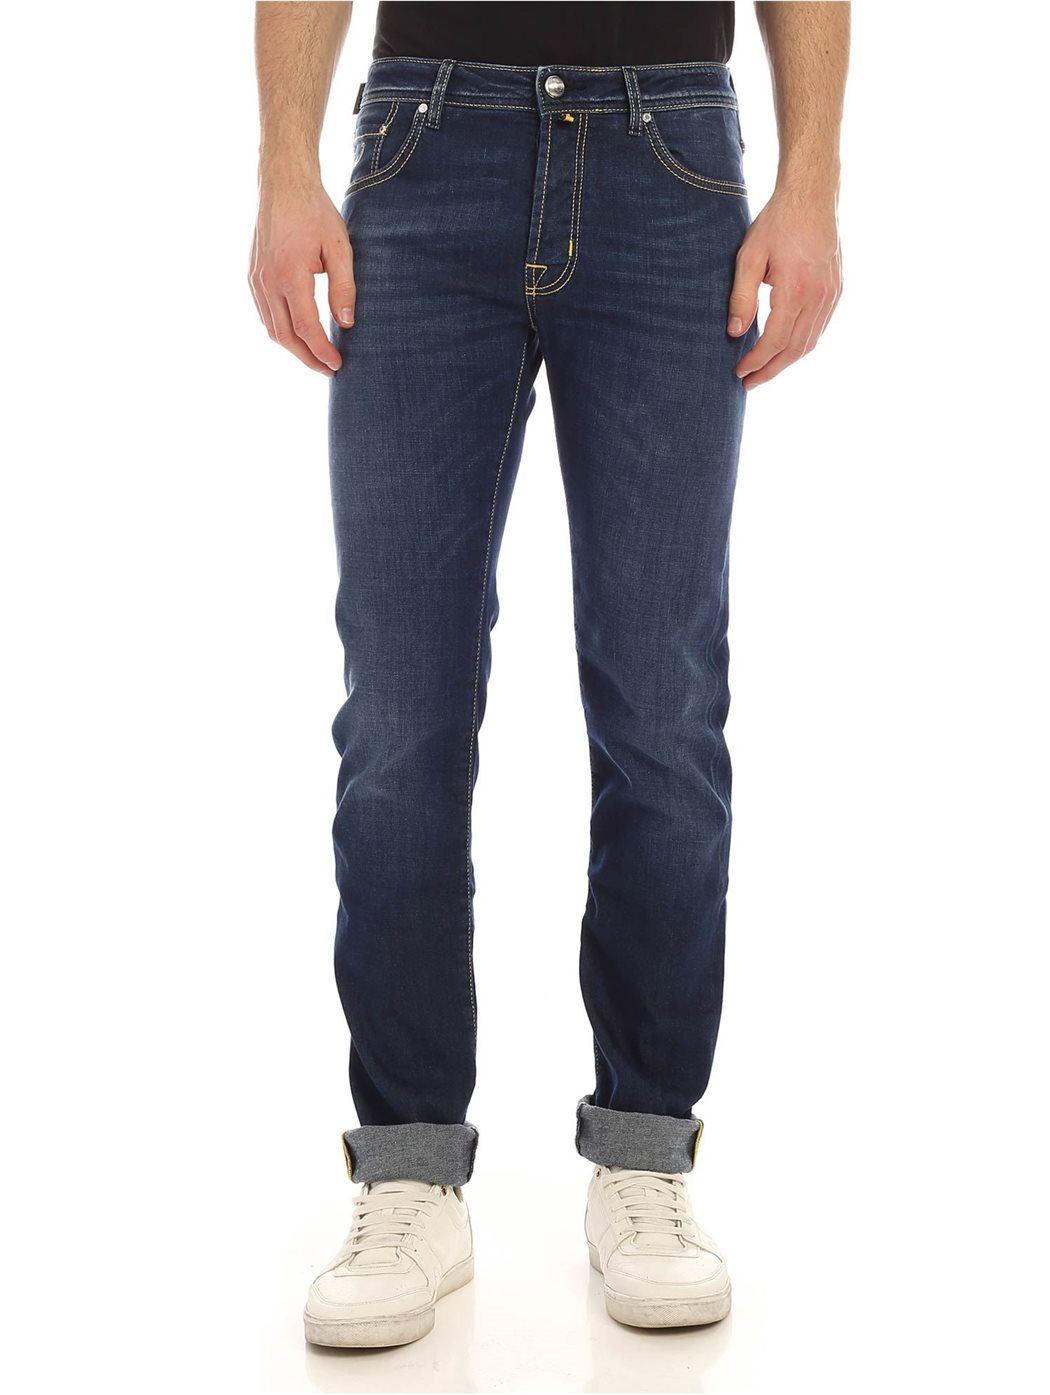 JACOB COHEN J688 1 JEANS